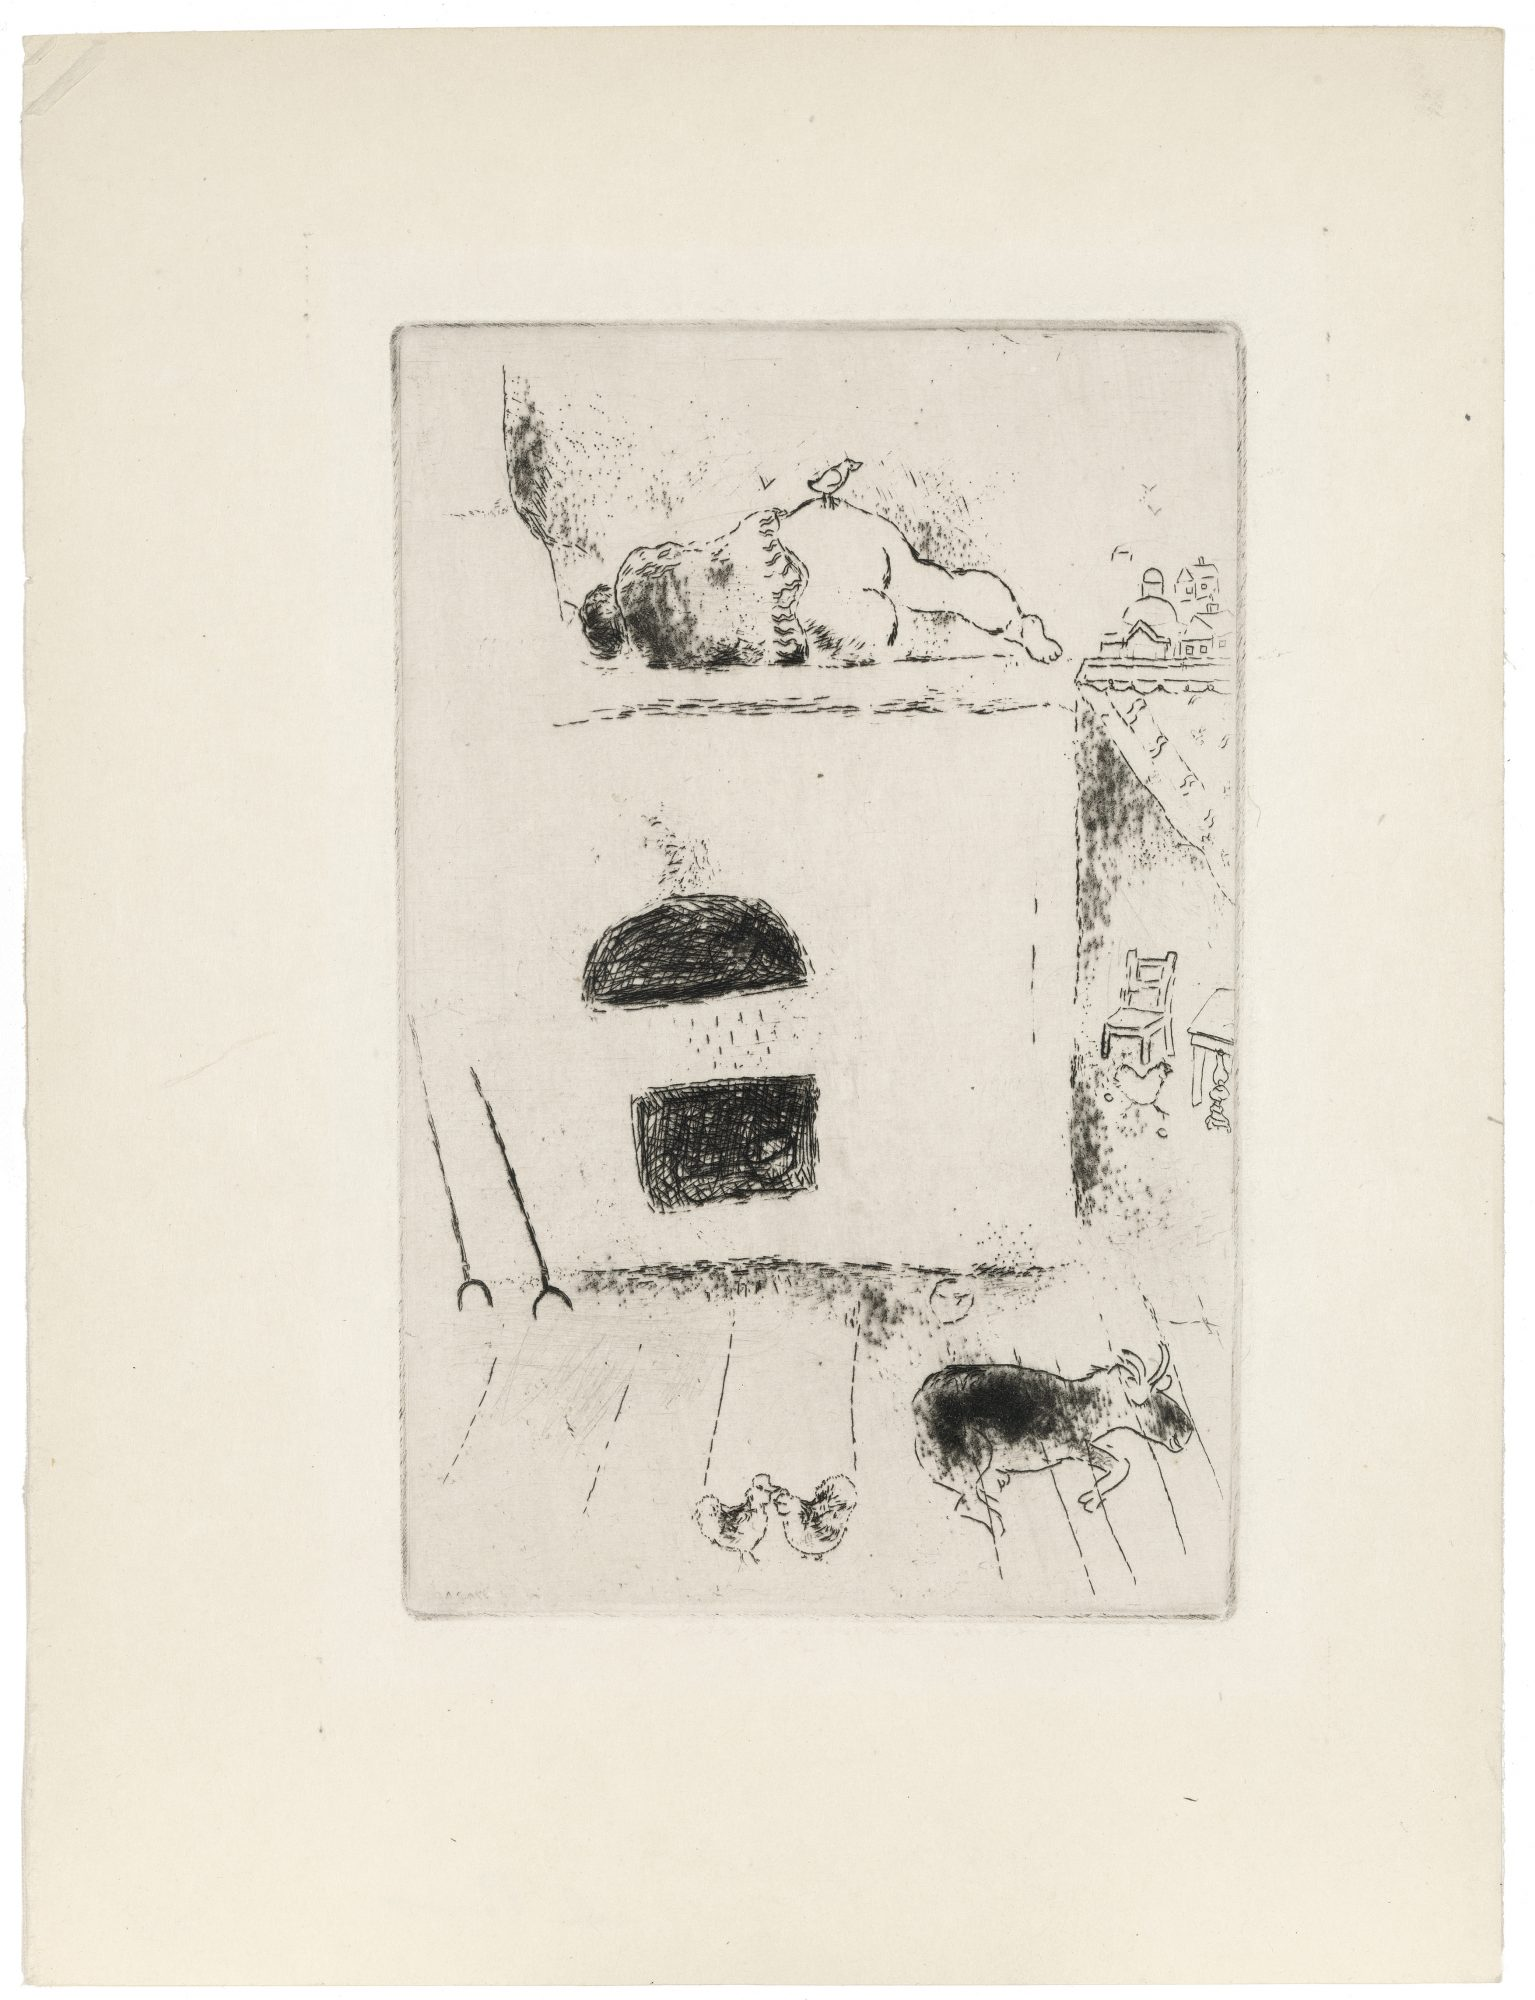 Marc Chagall (French, born Belarus, 1887–1985) Die Trägheit II (Sloth II) Plate 15 from The Seven Capital Sins, 1925. Etching, 7 1/8 x 5 in. Gift of Madeleine P. and Harvey R. Plonsker, Class of 1961, M.2016.26.5